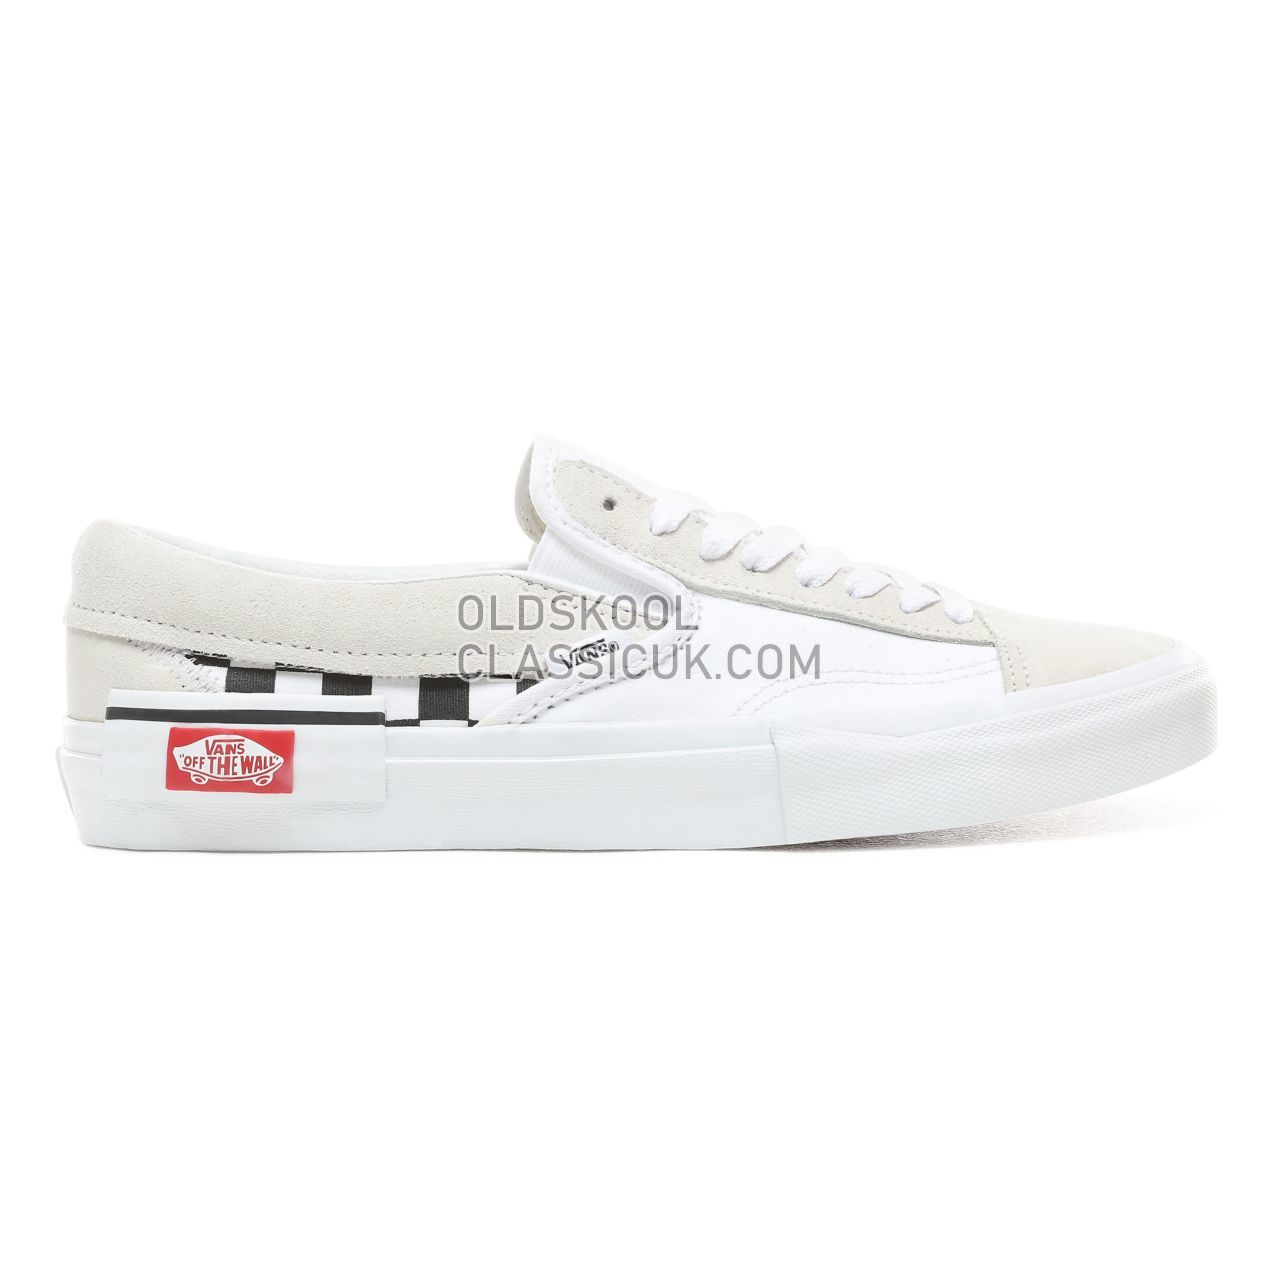 Vans Checkerboard Slip-On Cap Sneakers Mens (Checkerboard) True White/Black VN0A3WM527I Shoes